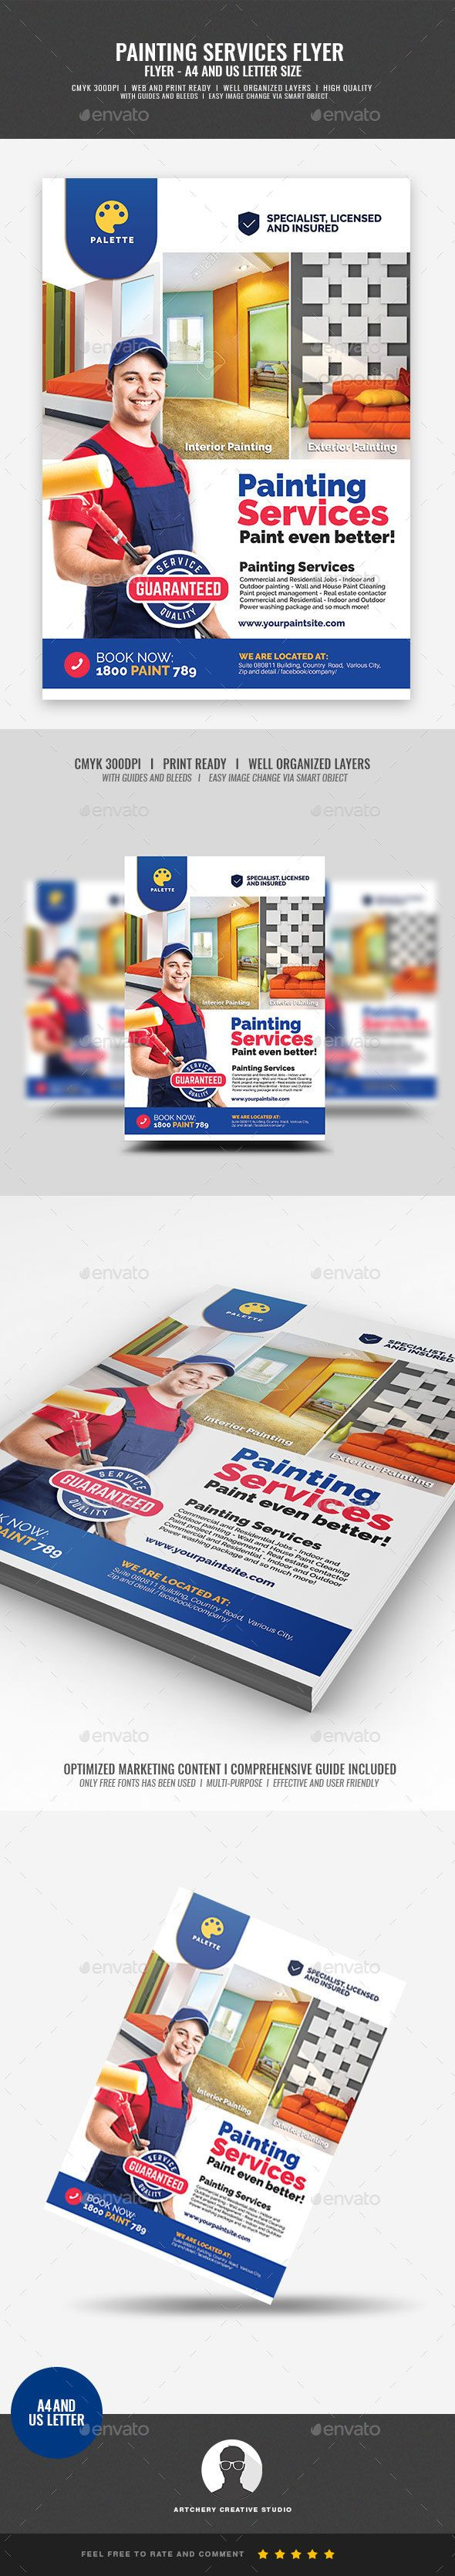 Paint Company Promotional Flyer Commerce Flyers Flyer Templates